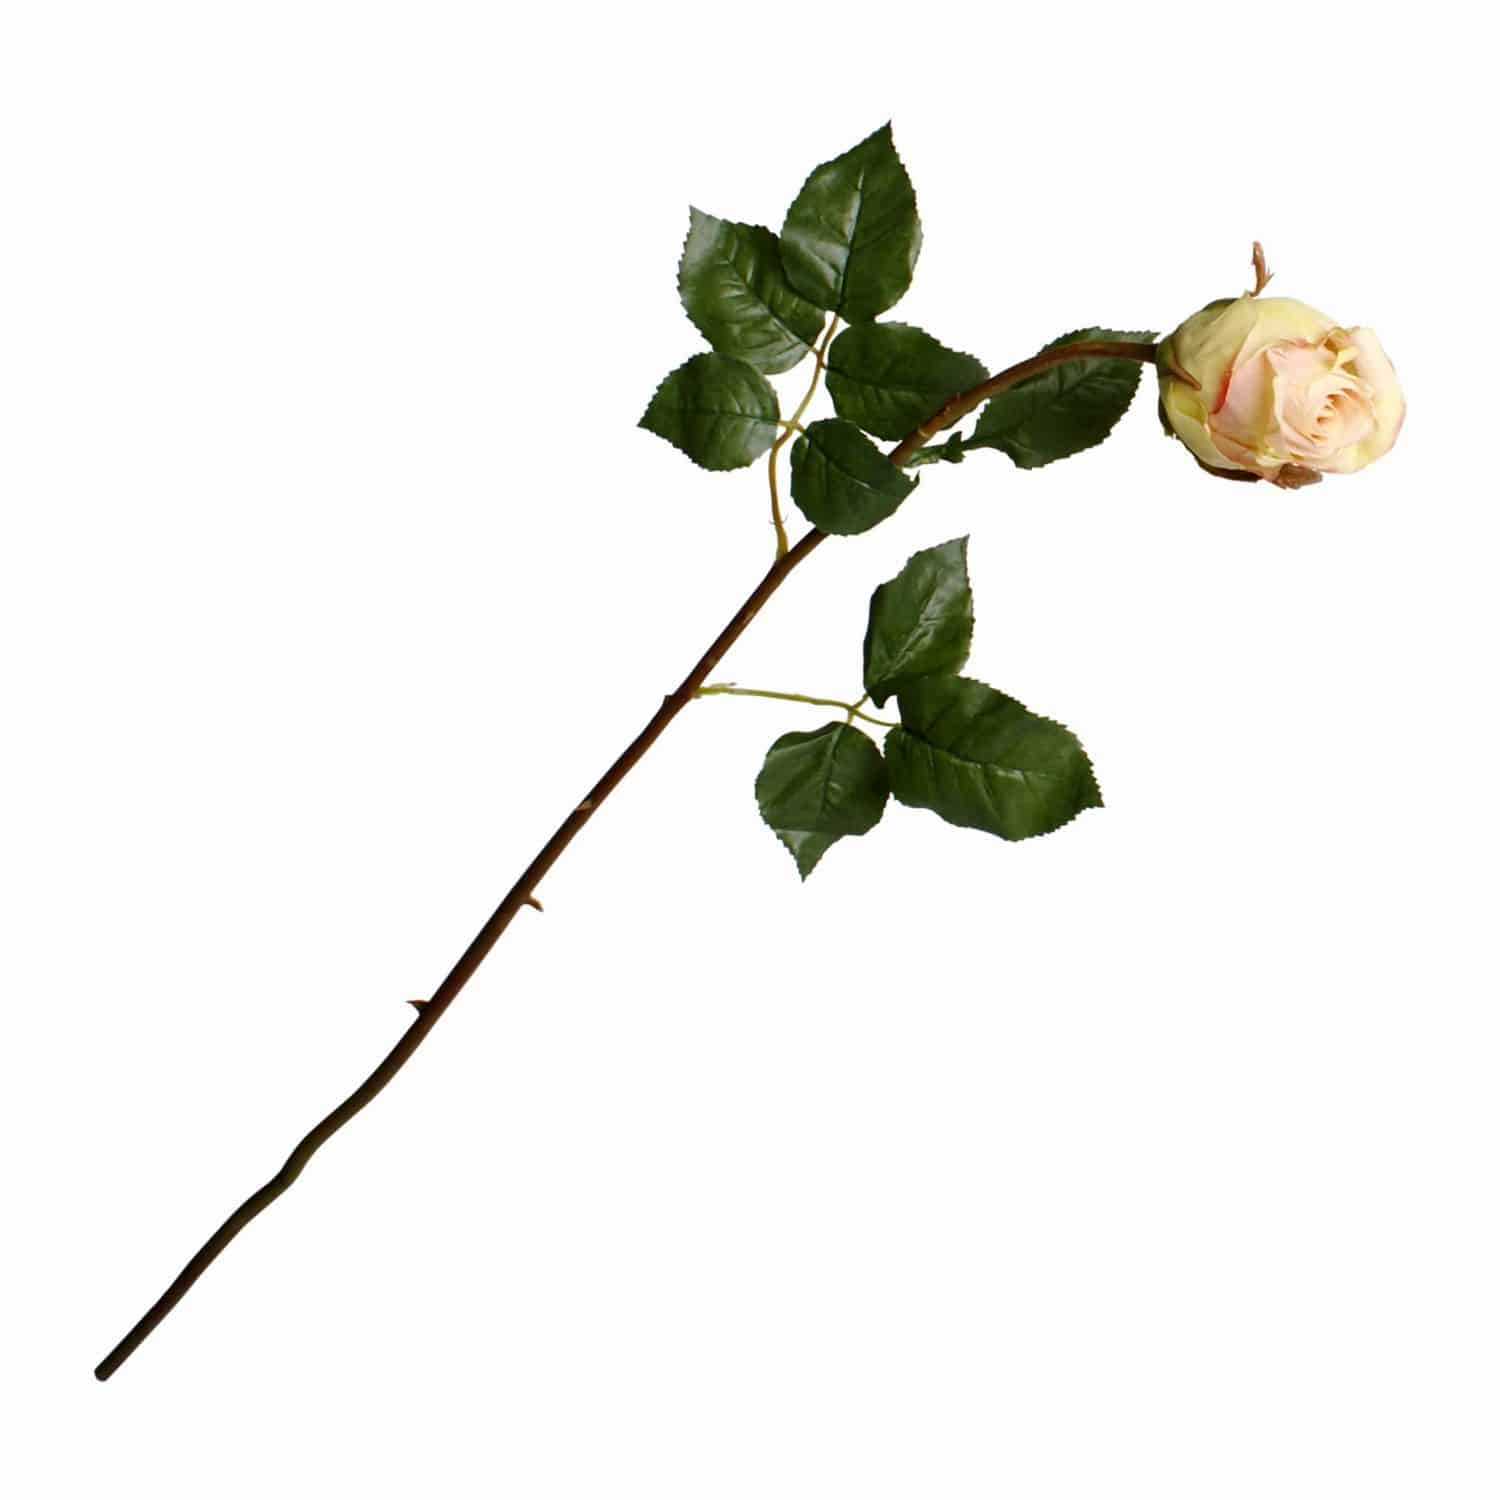 Buy the best silk roses. Our dusty pink Ecuador rose flower is truly natural looking. Each stem has a partially bloomed bud with tight petals and a long stem.